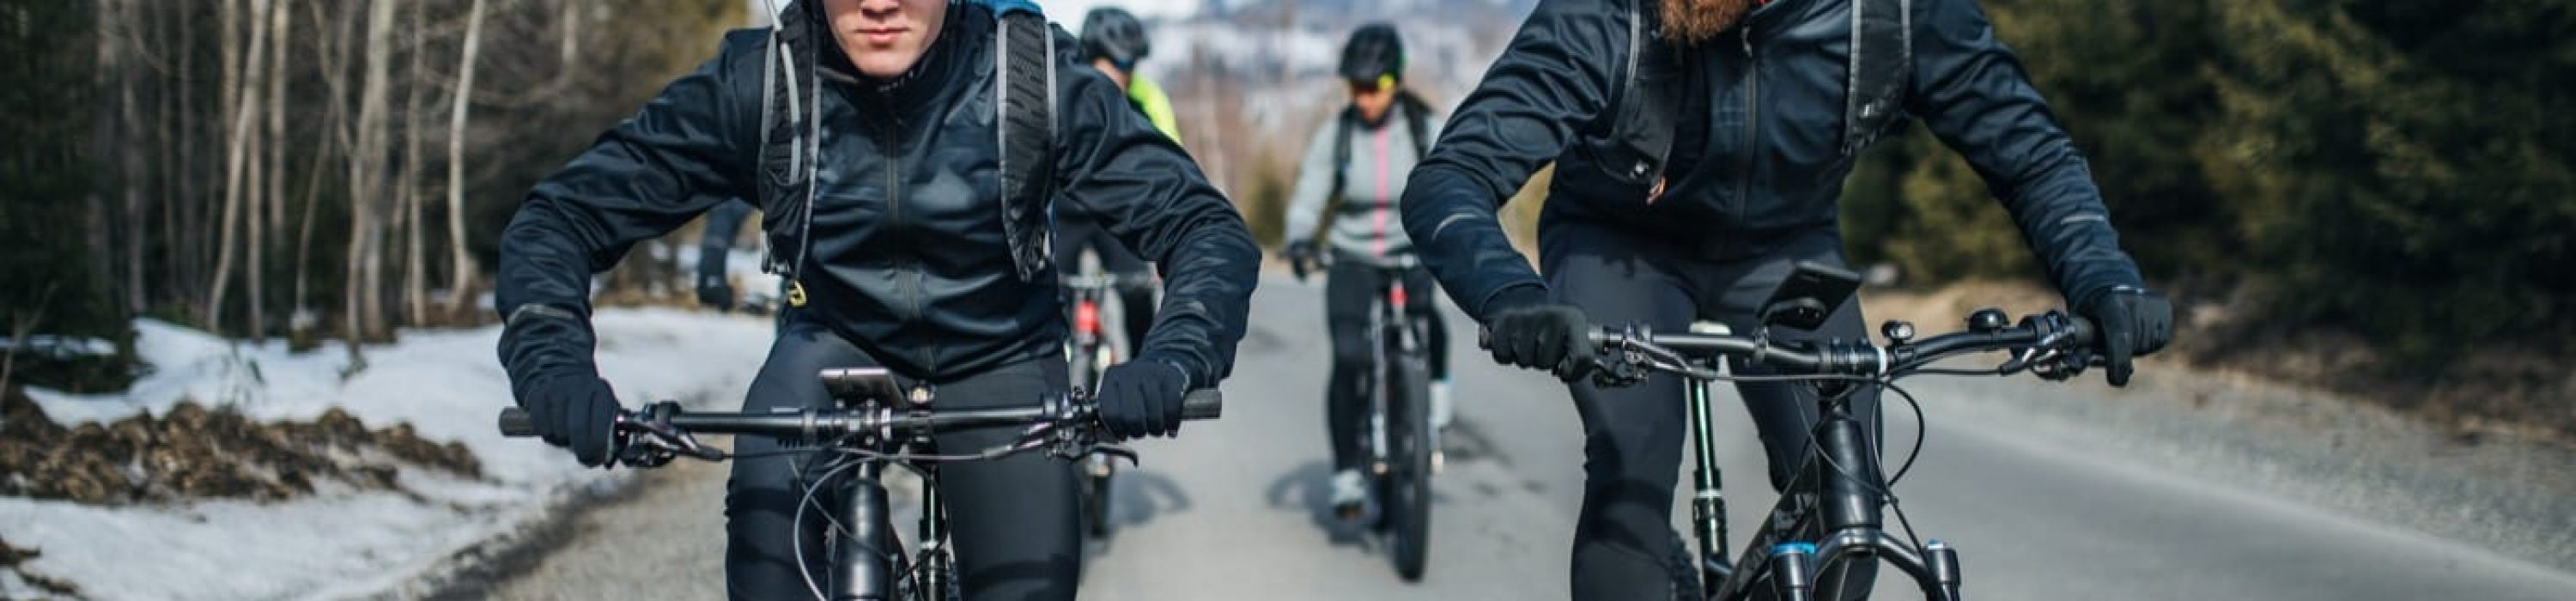 A group of young mountain bikers riding on road outdoors in winter.